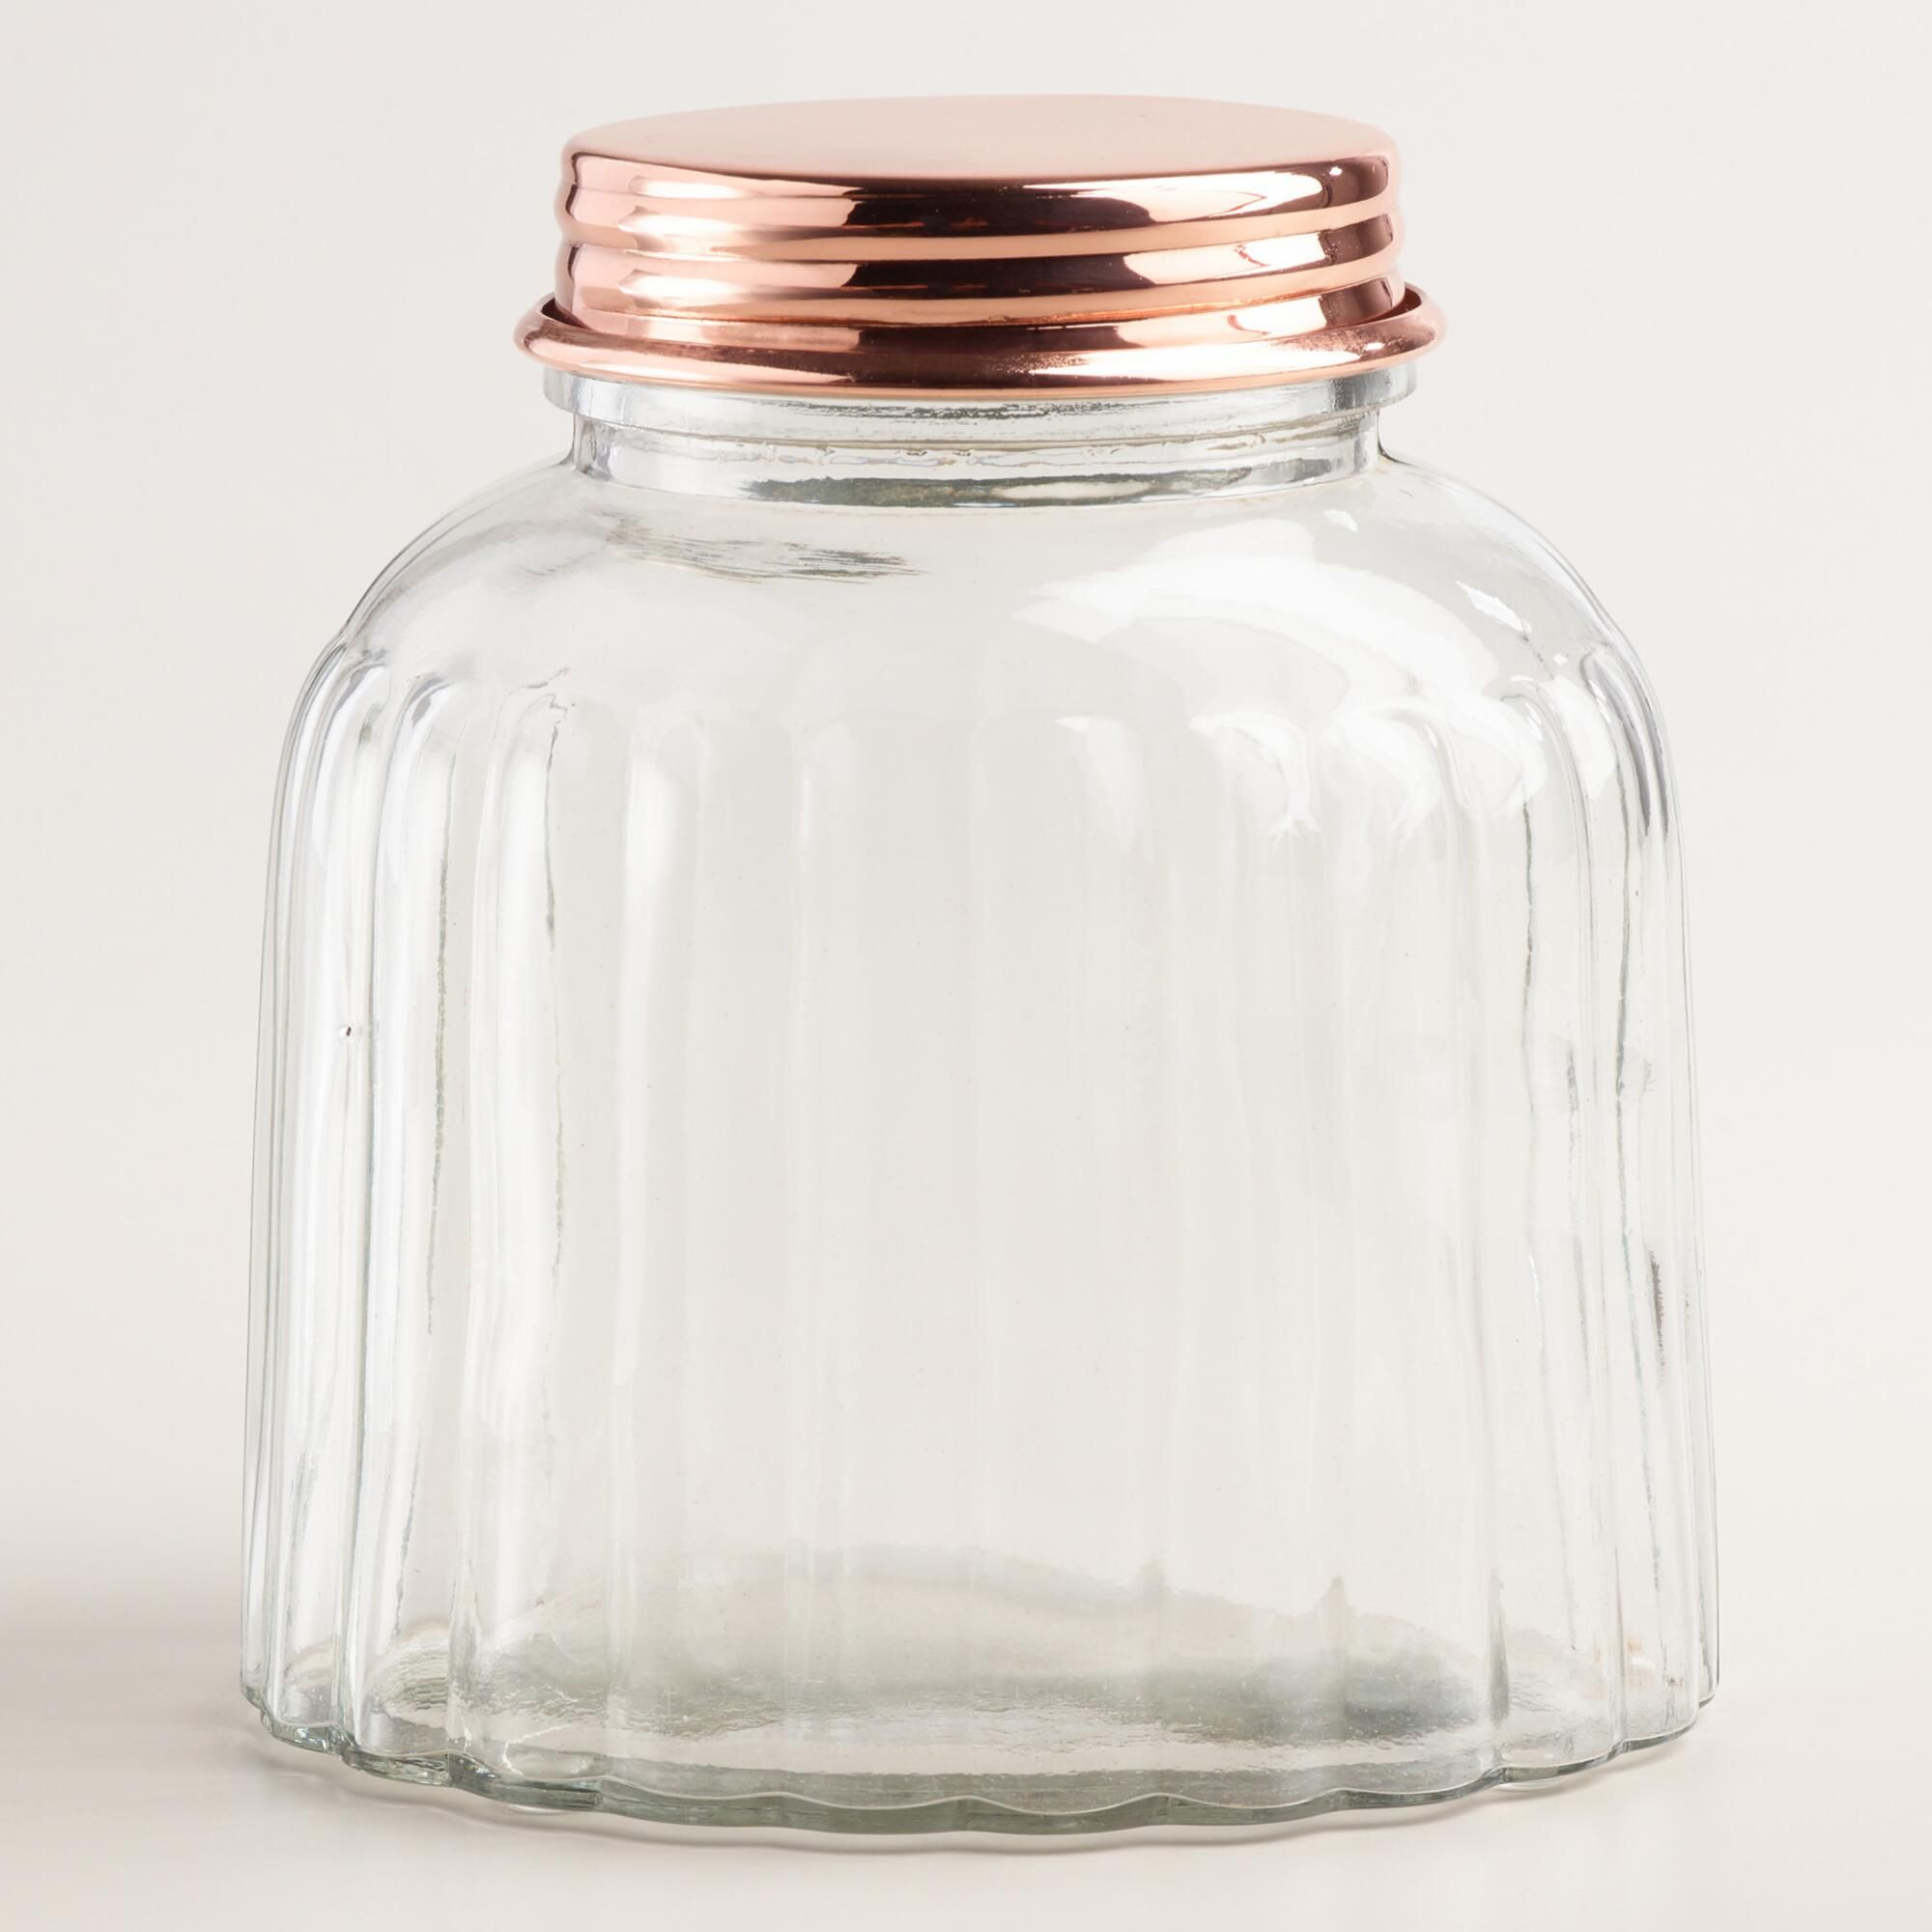 decorative glass jars for kitchen napkins with a vintage inspired ribbed texture and warm copper